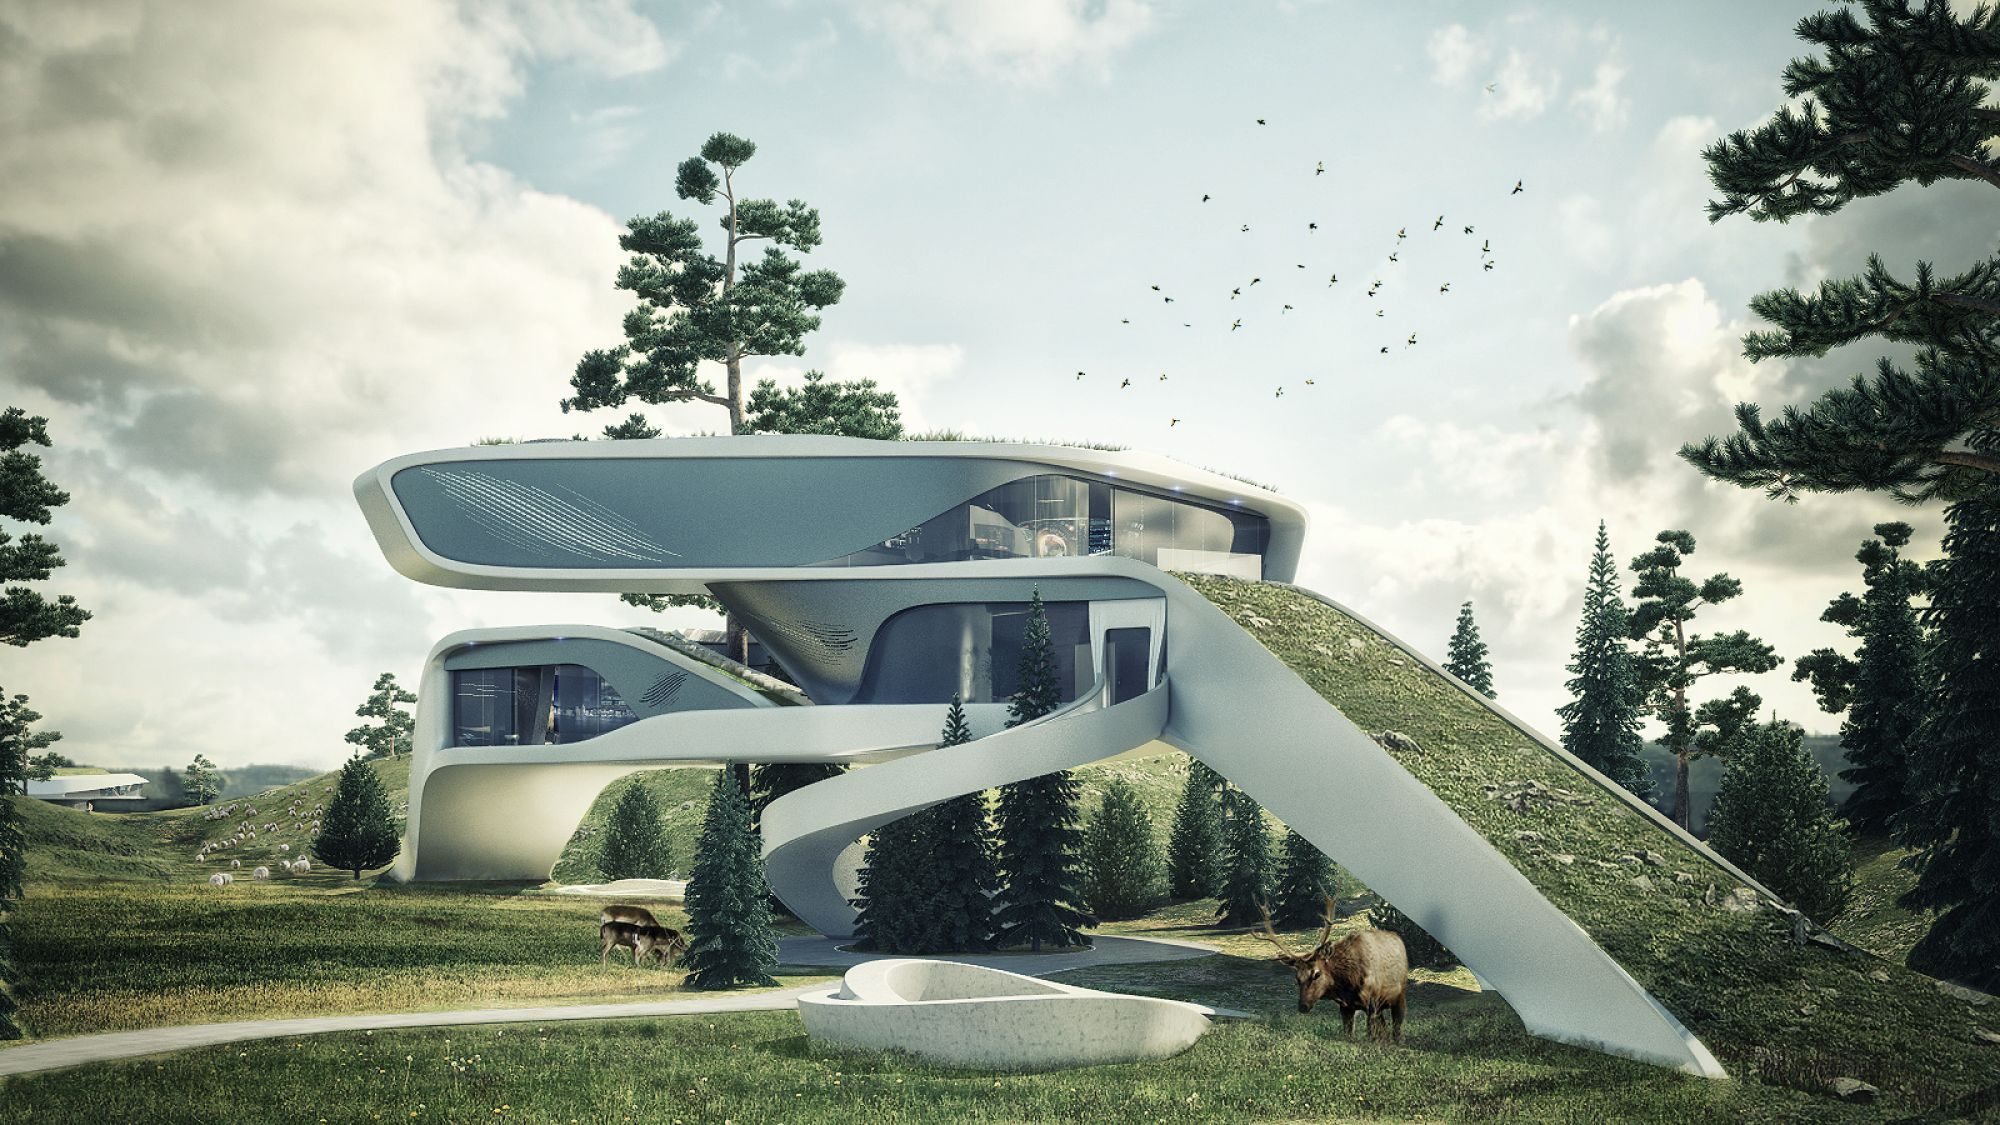 High Quality Find This Pin And More On House, Future City. By Ip8290hy.